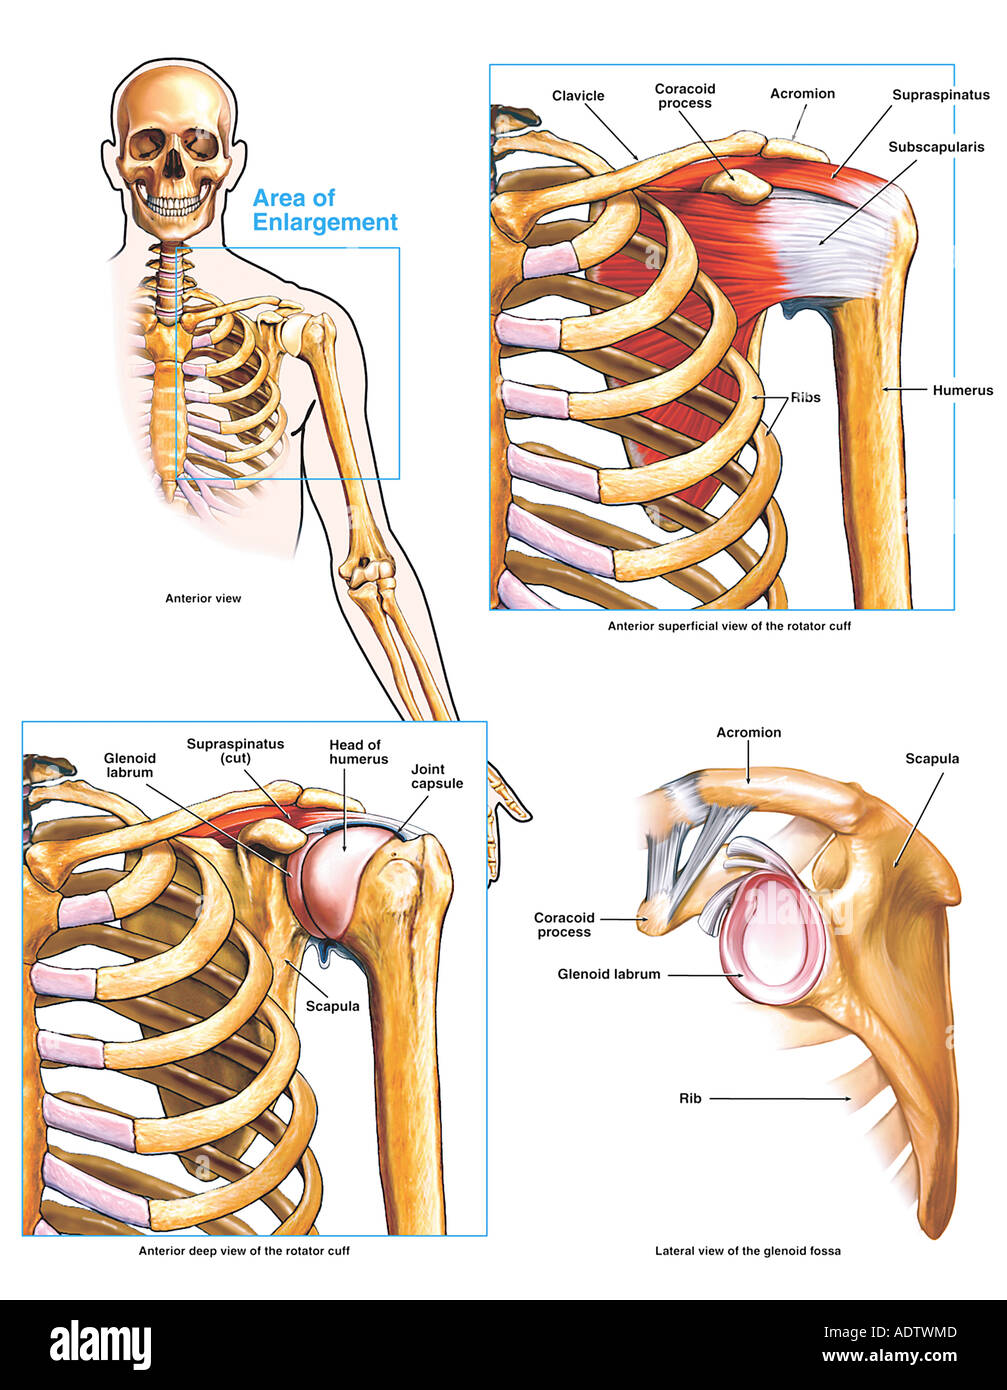 Anatomy of the shoulder